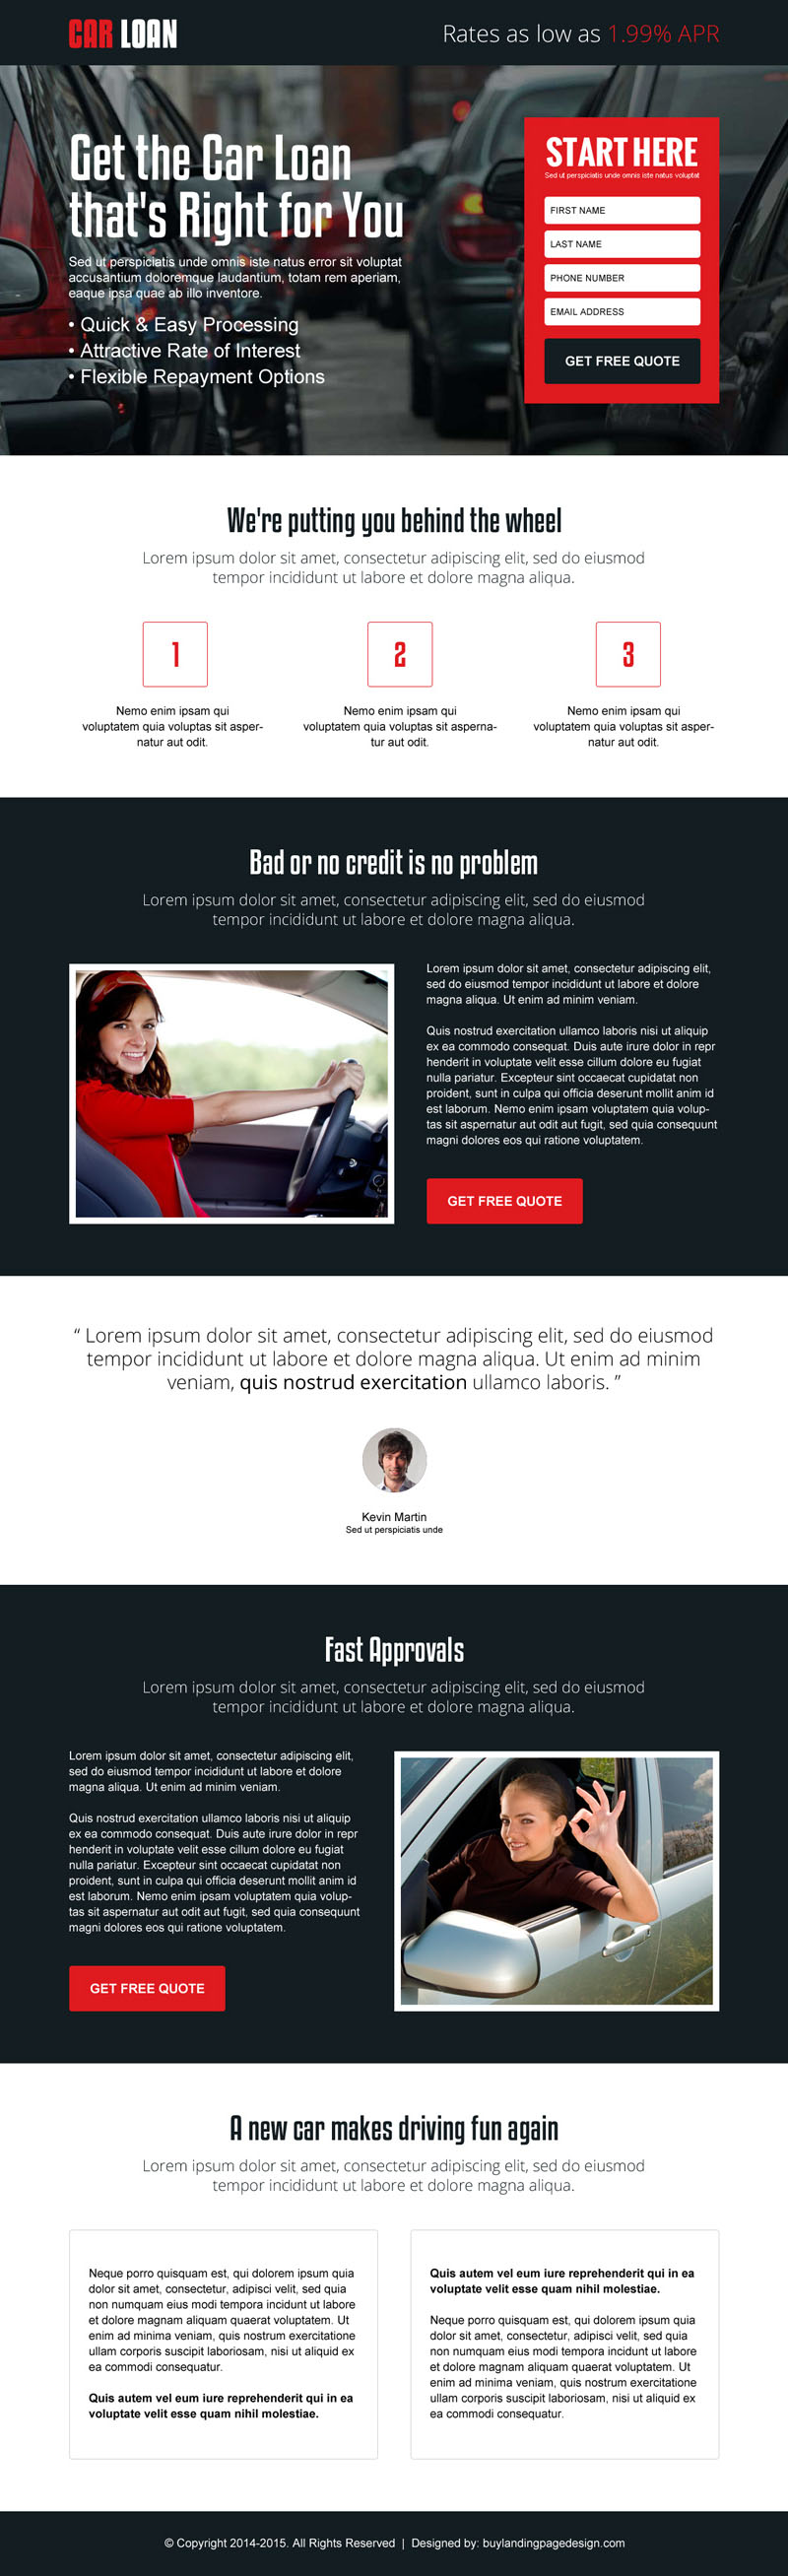 lowest-interest-rate-for-car-loan-lead-generation-converting-responsive-landing-page-design-005